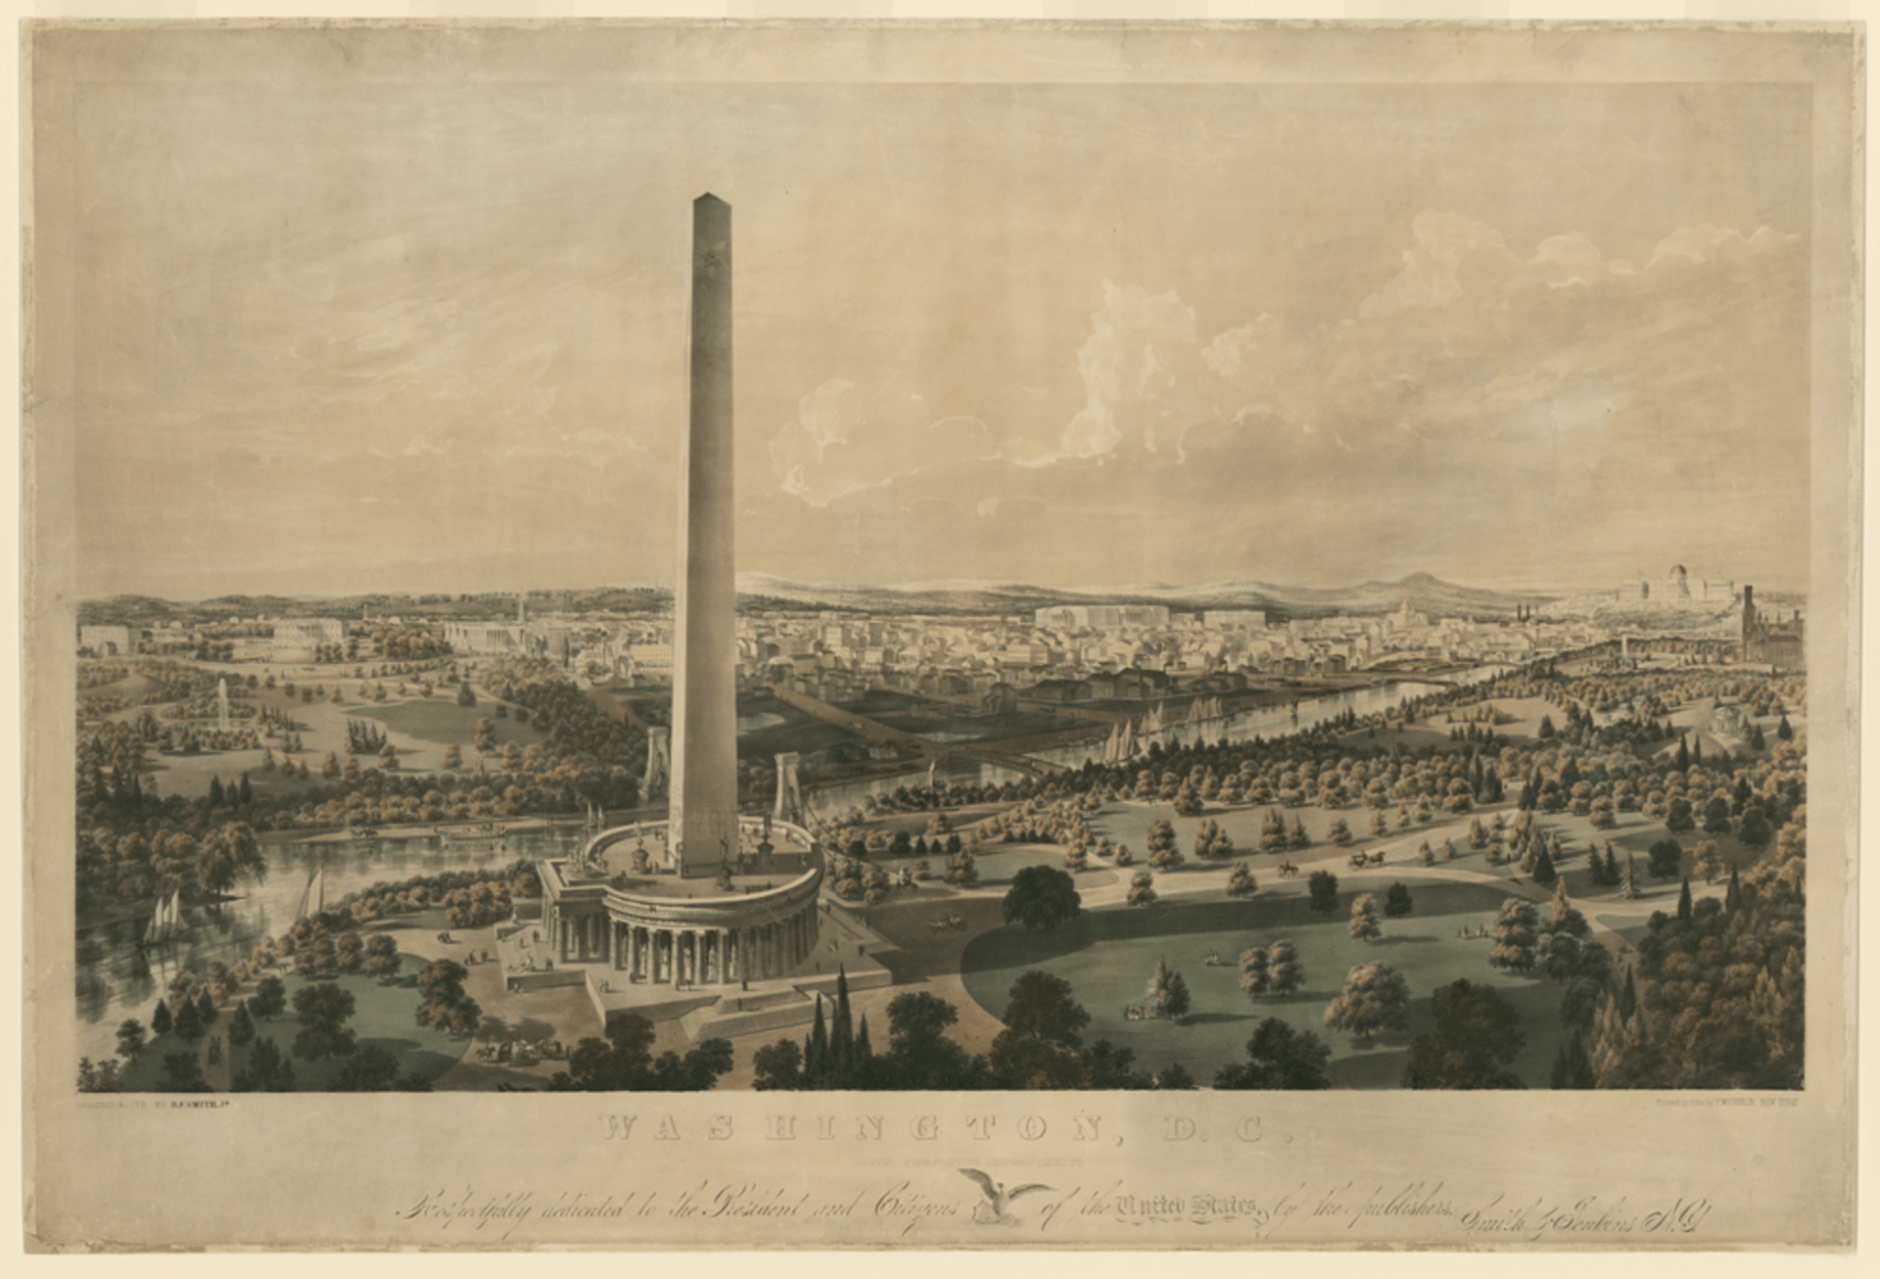 Projected improvements to the Washington Monument and National Mall by B.F. Smith, 1852. This image shows a variation on the circular colonnade that was part of the original design for the Washington Monument, but was never executed. It also shows a proposed suspension bridge across the canal adjacent to the Mall. Credit: Library of Congress, Prints and Photographs Division, LC-DIG-ppmsca-31534